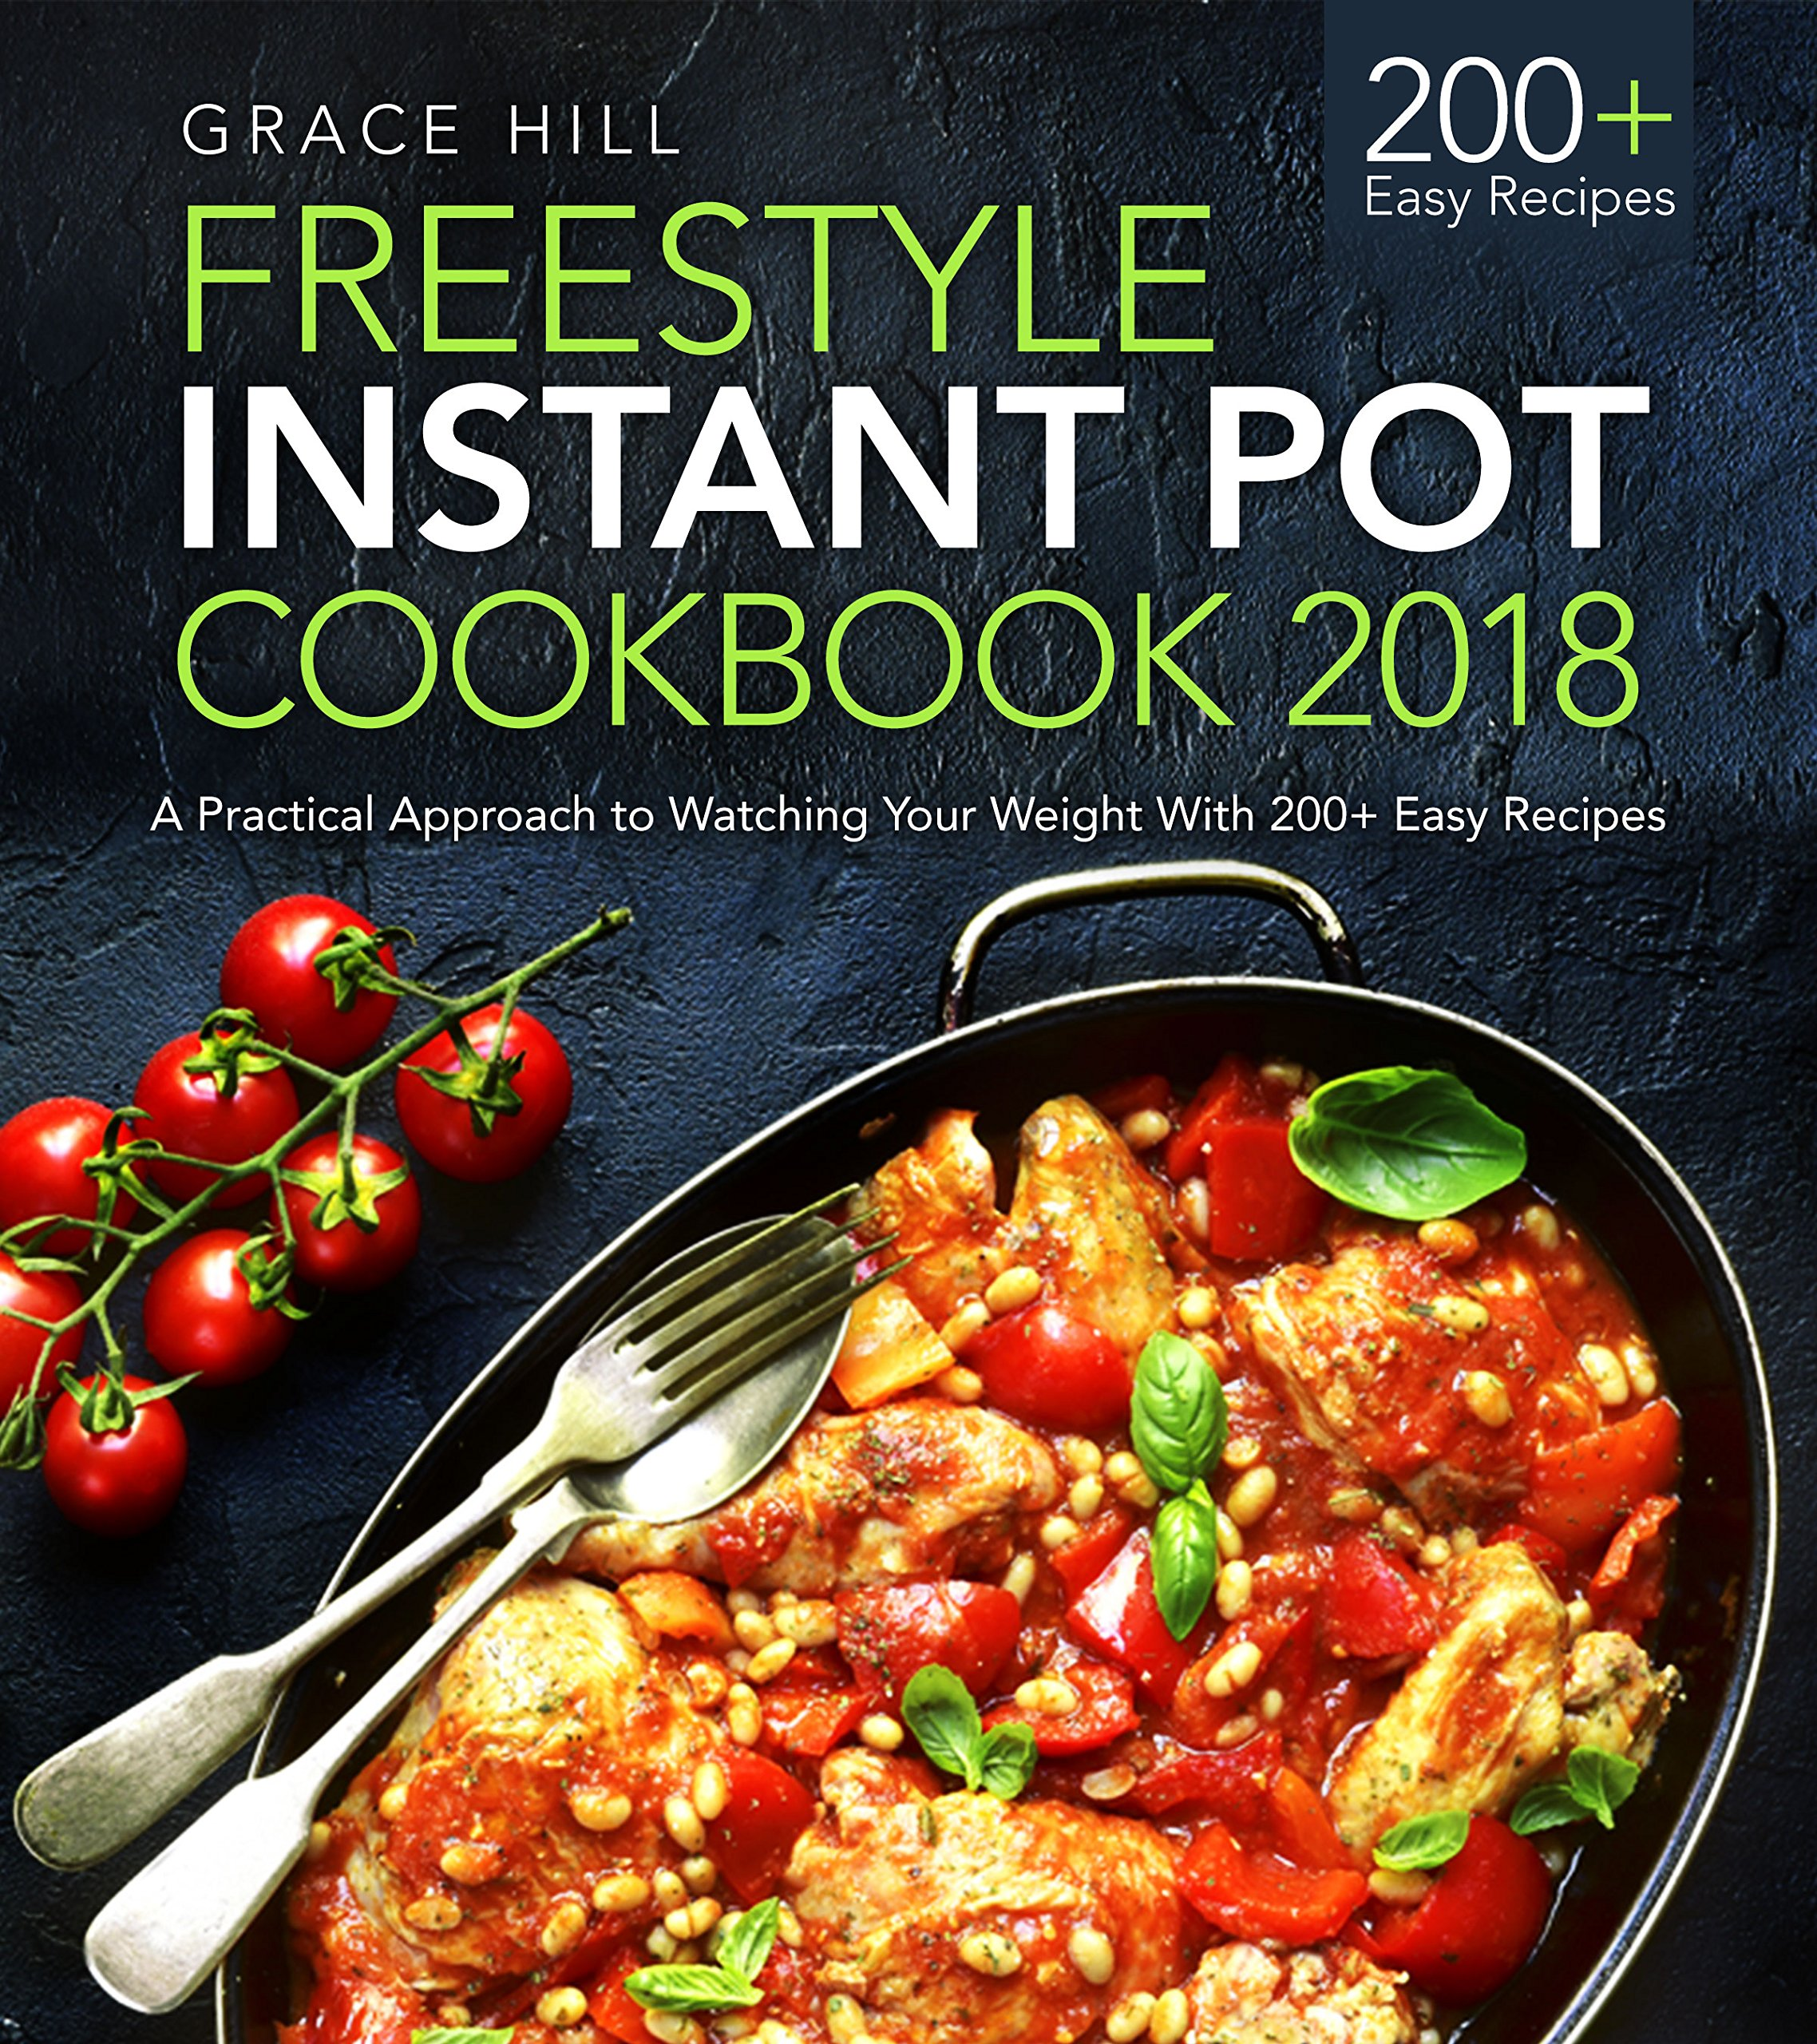 Freestyle Instant Pot Cookbook 2018: A Practical Approach to Watching Your Weight With 100+ Easy Recipes (The Instant Pot Flex Guide)